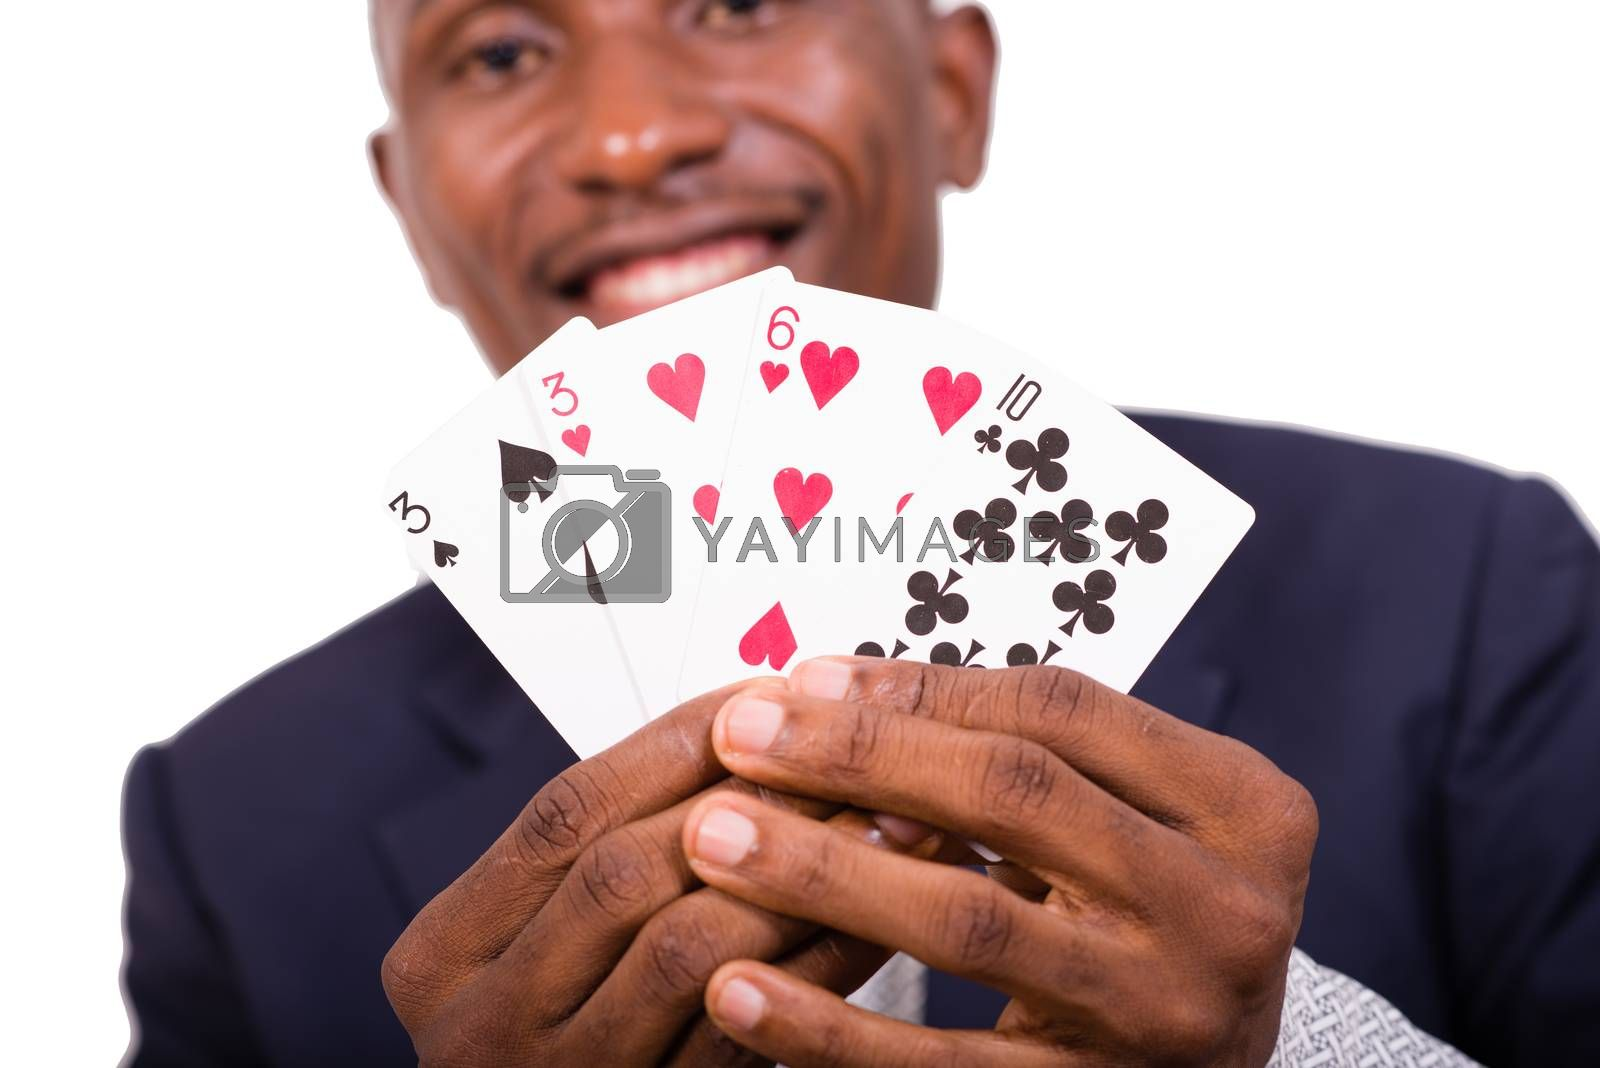 Young man in suit, happy shows in his hands different card game.Large shot on cards.